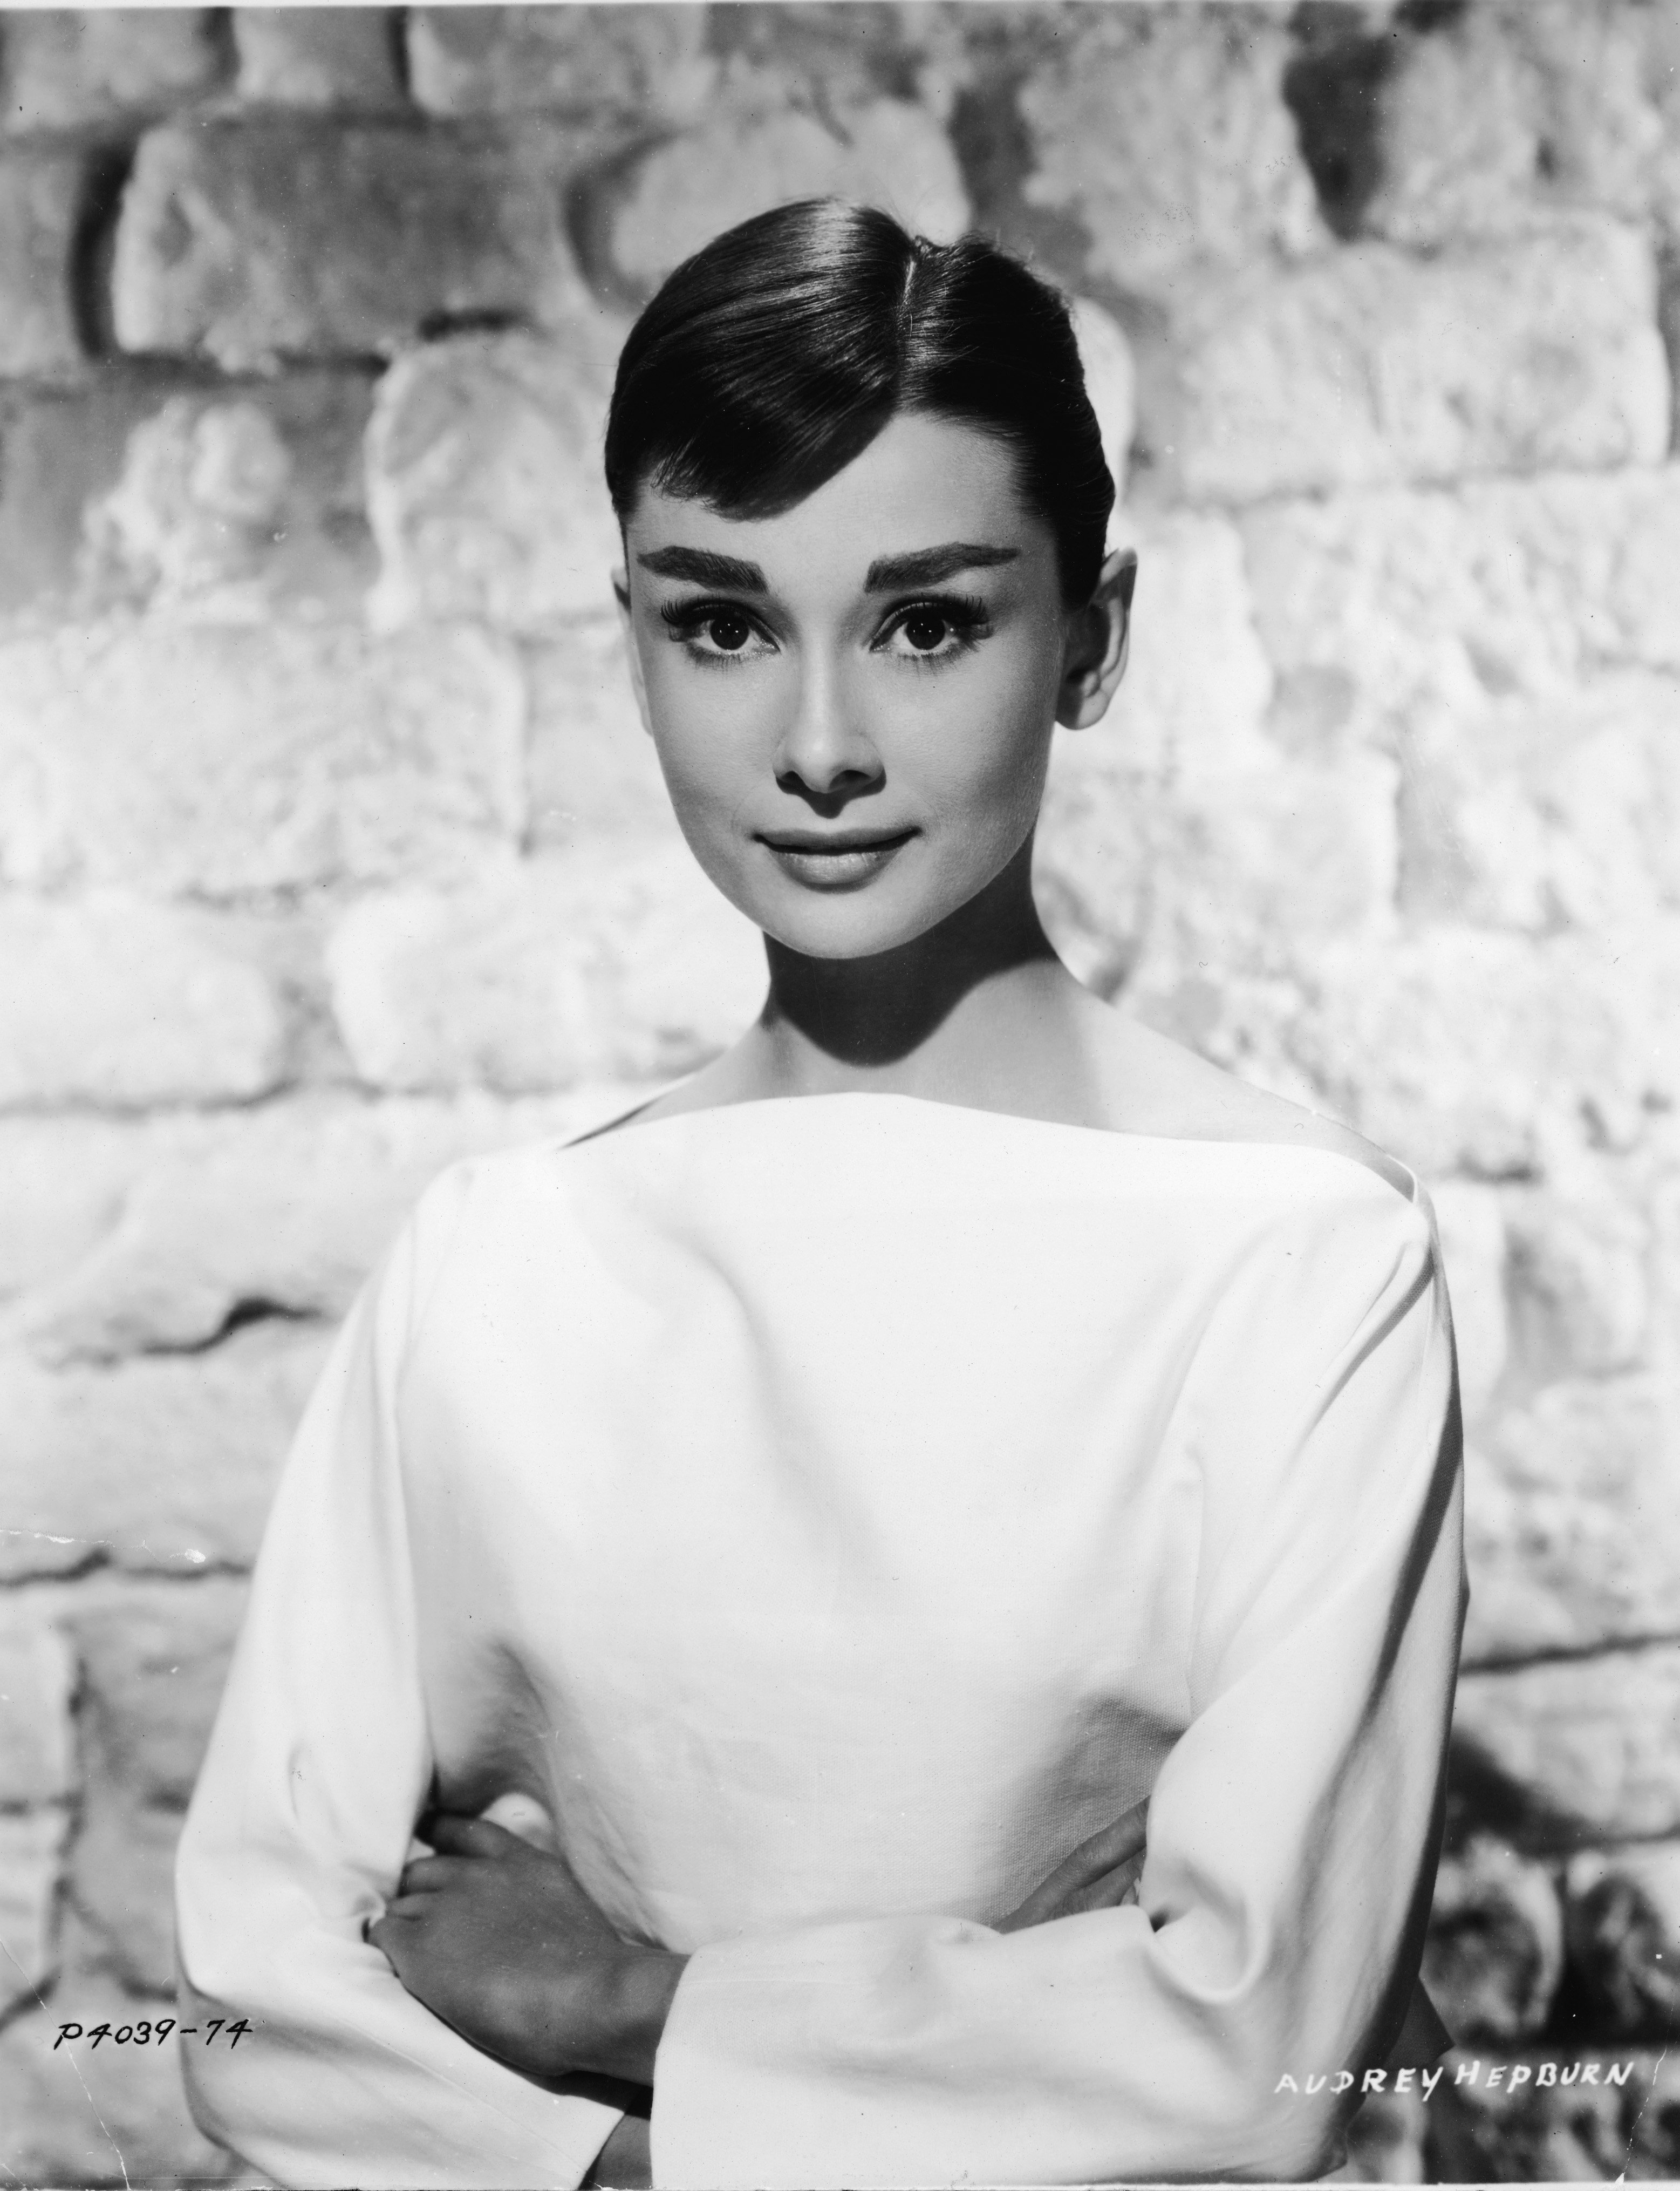 American actress Audrey Hepburn circa 1955 in a white long-sleeved dress. | Getty Images